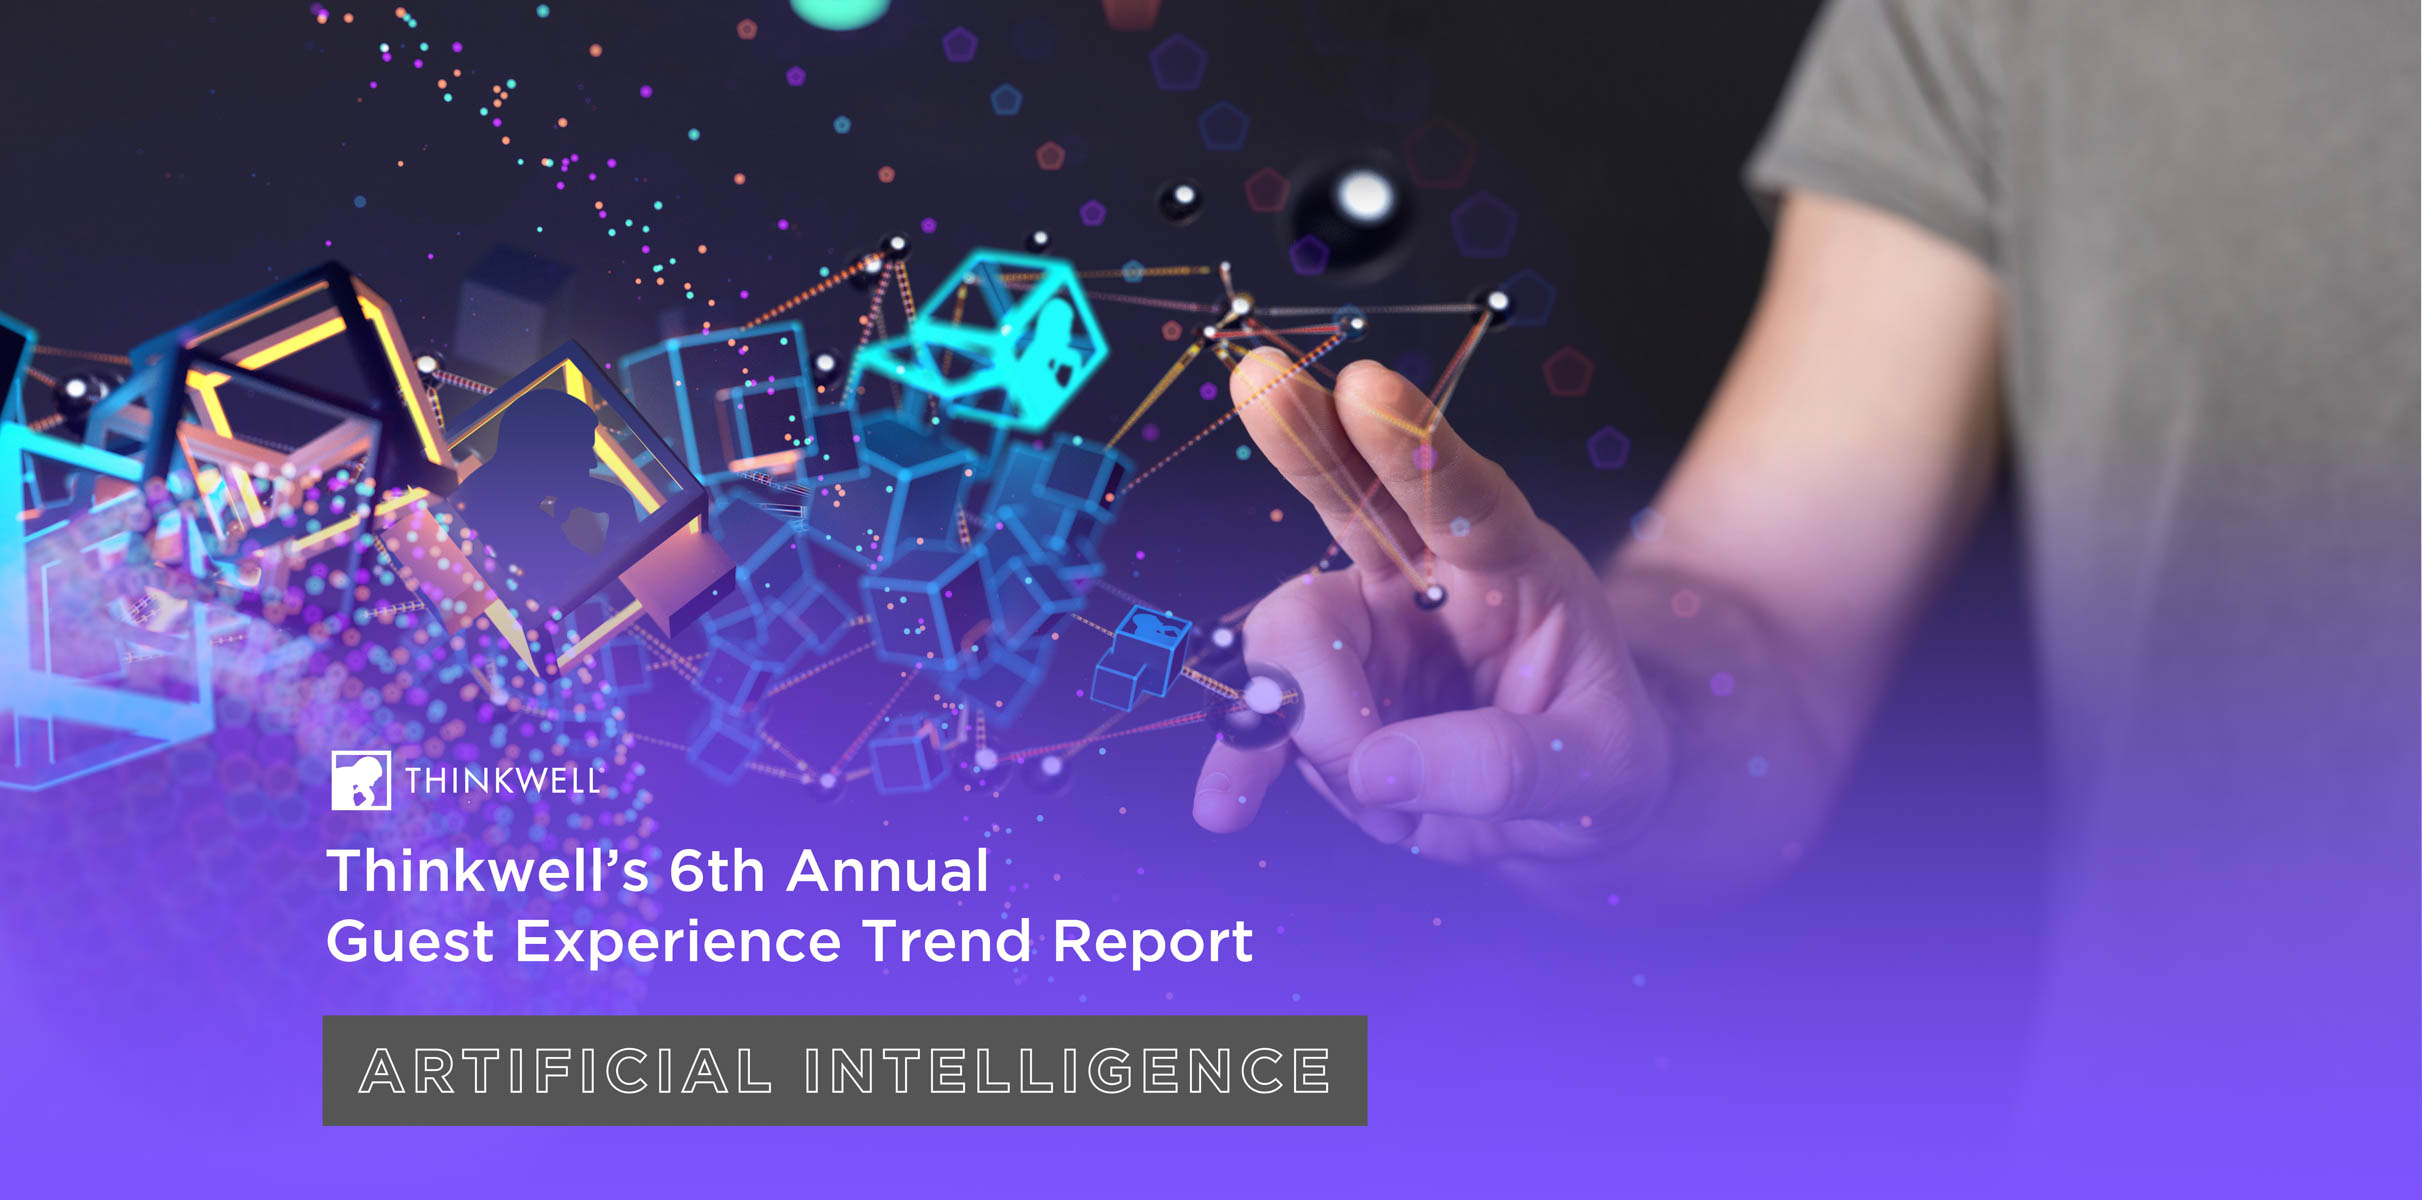 Thinkwell Group Releases Its 6th Annual Guest Experience Trend Report on Artificial Intelligence and Its Future Impact in Location-Based Experiences